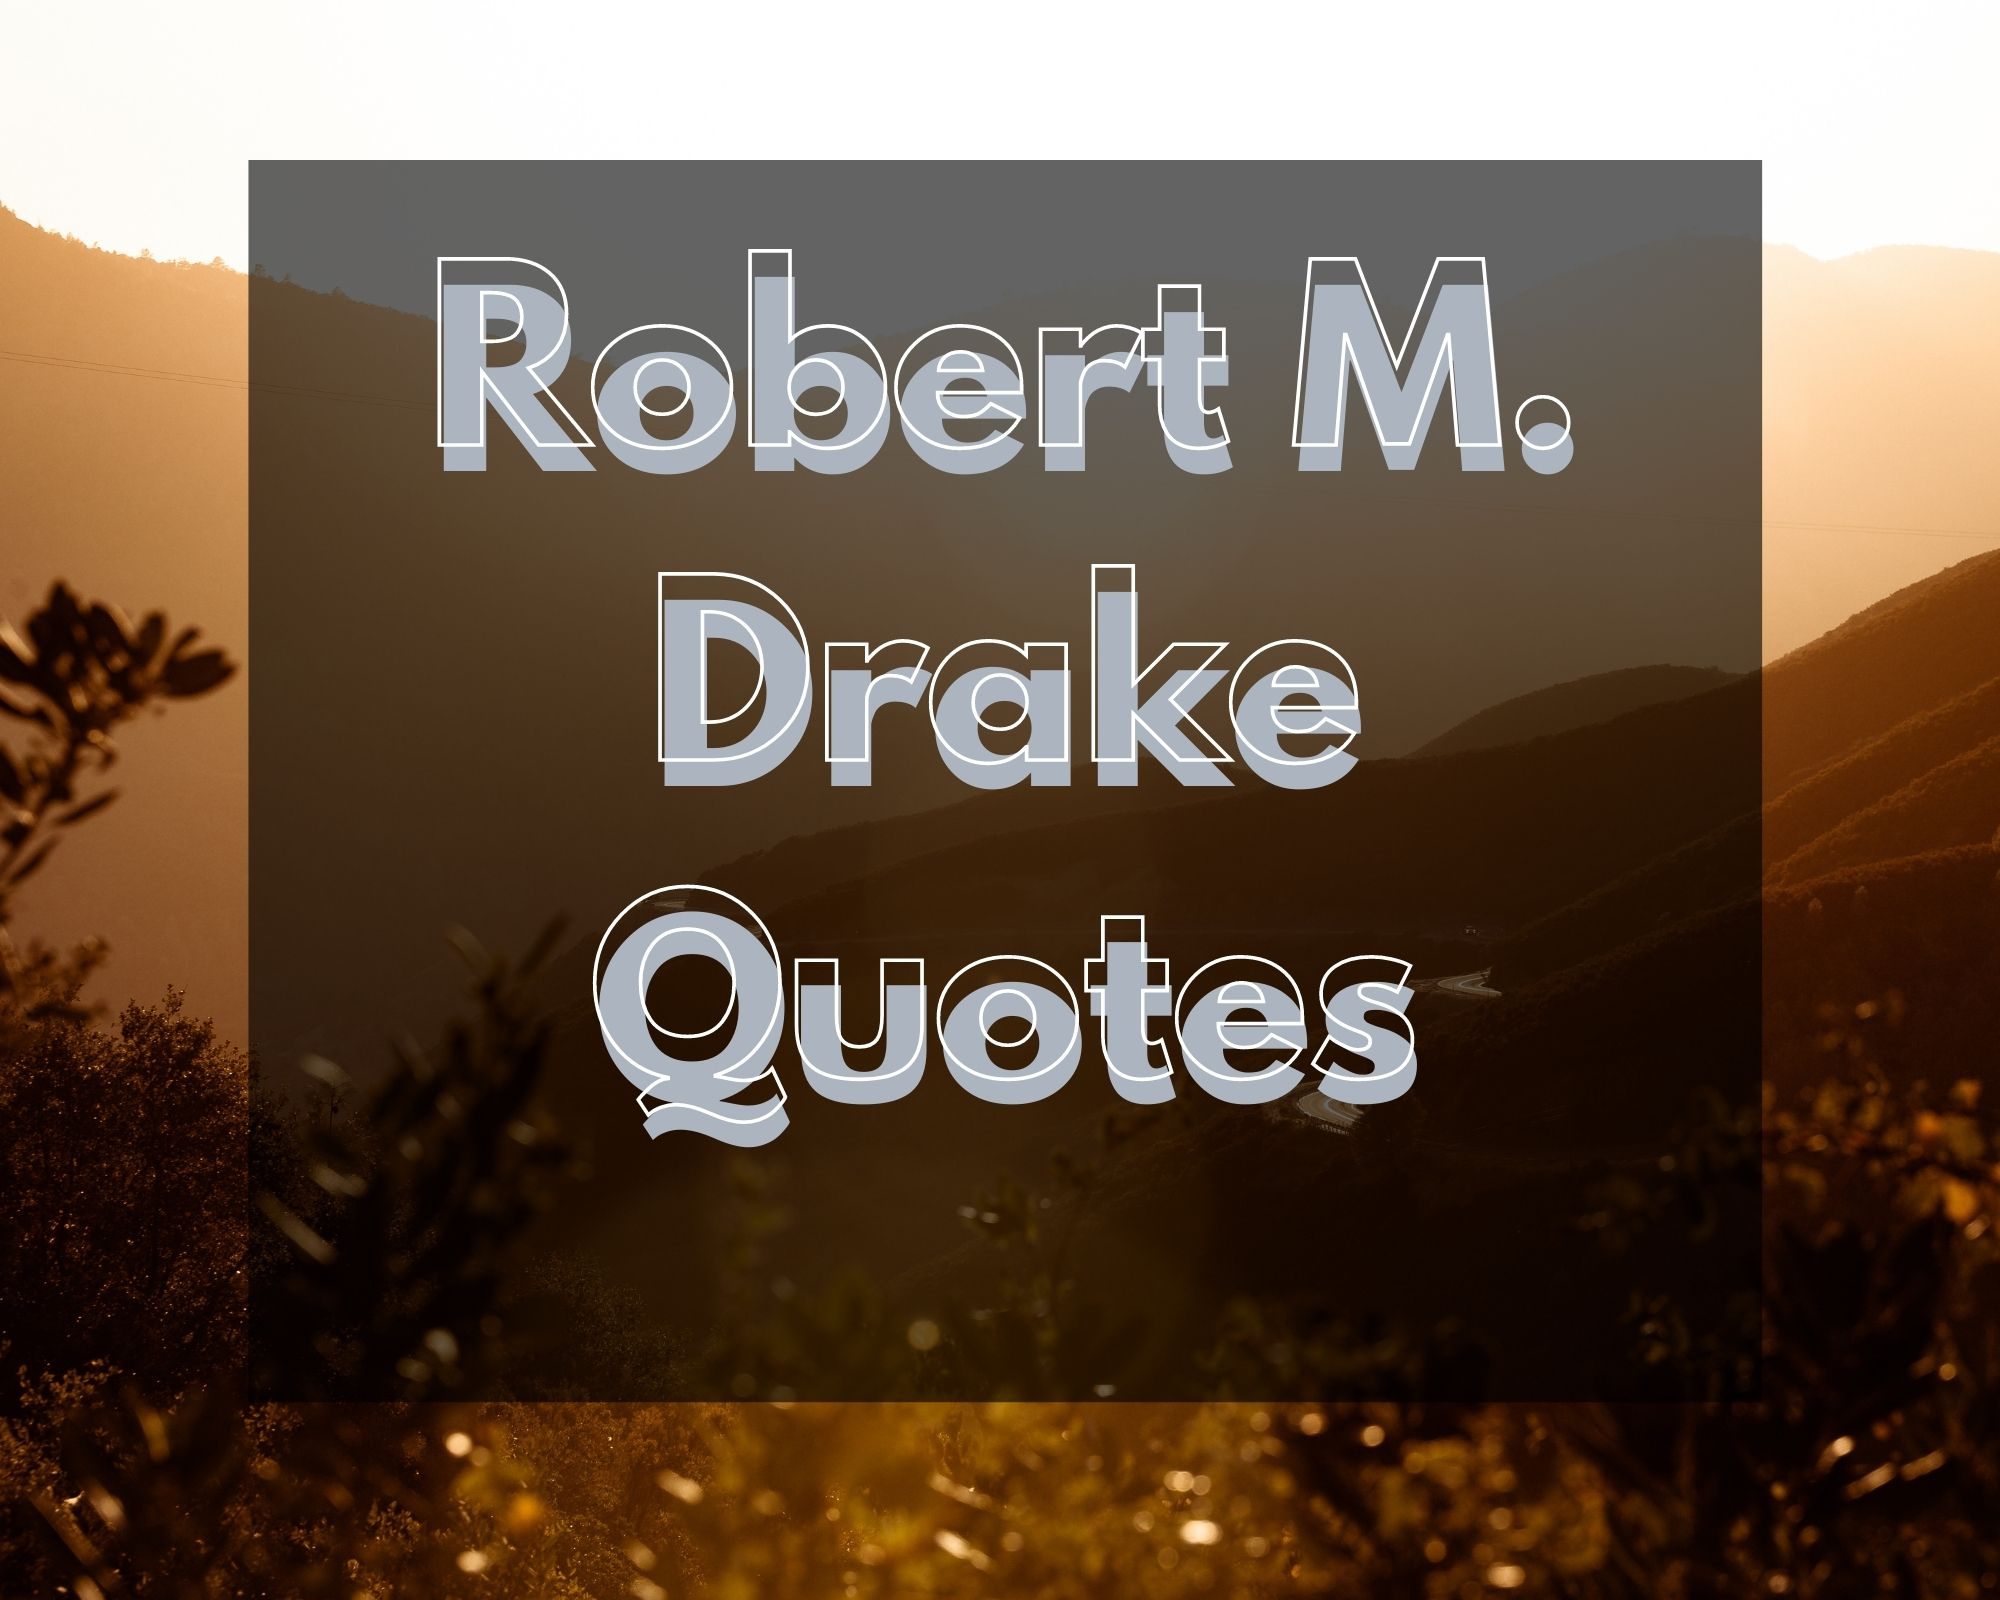 rm drake quotes